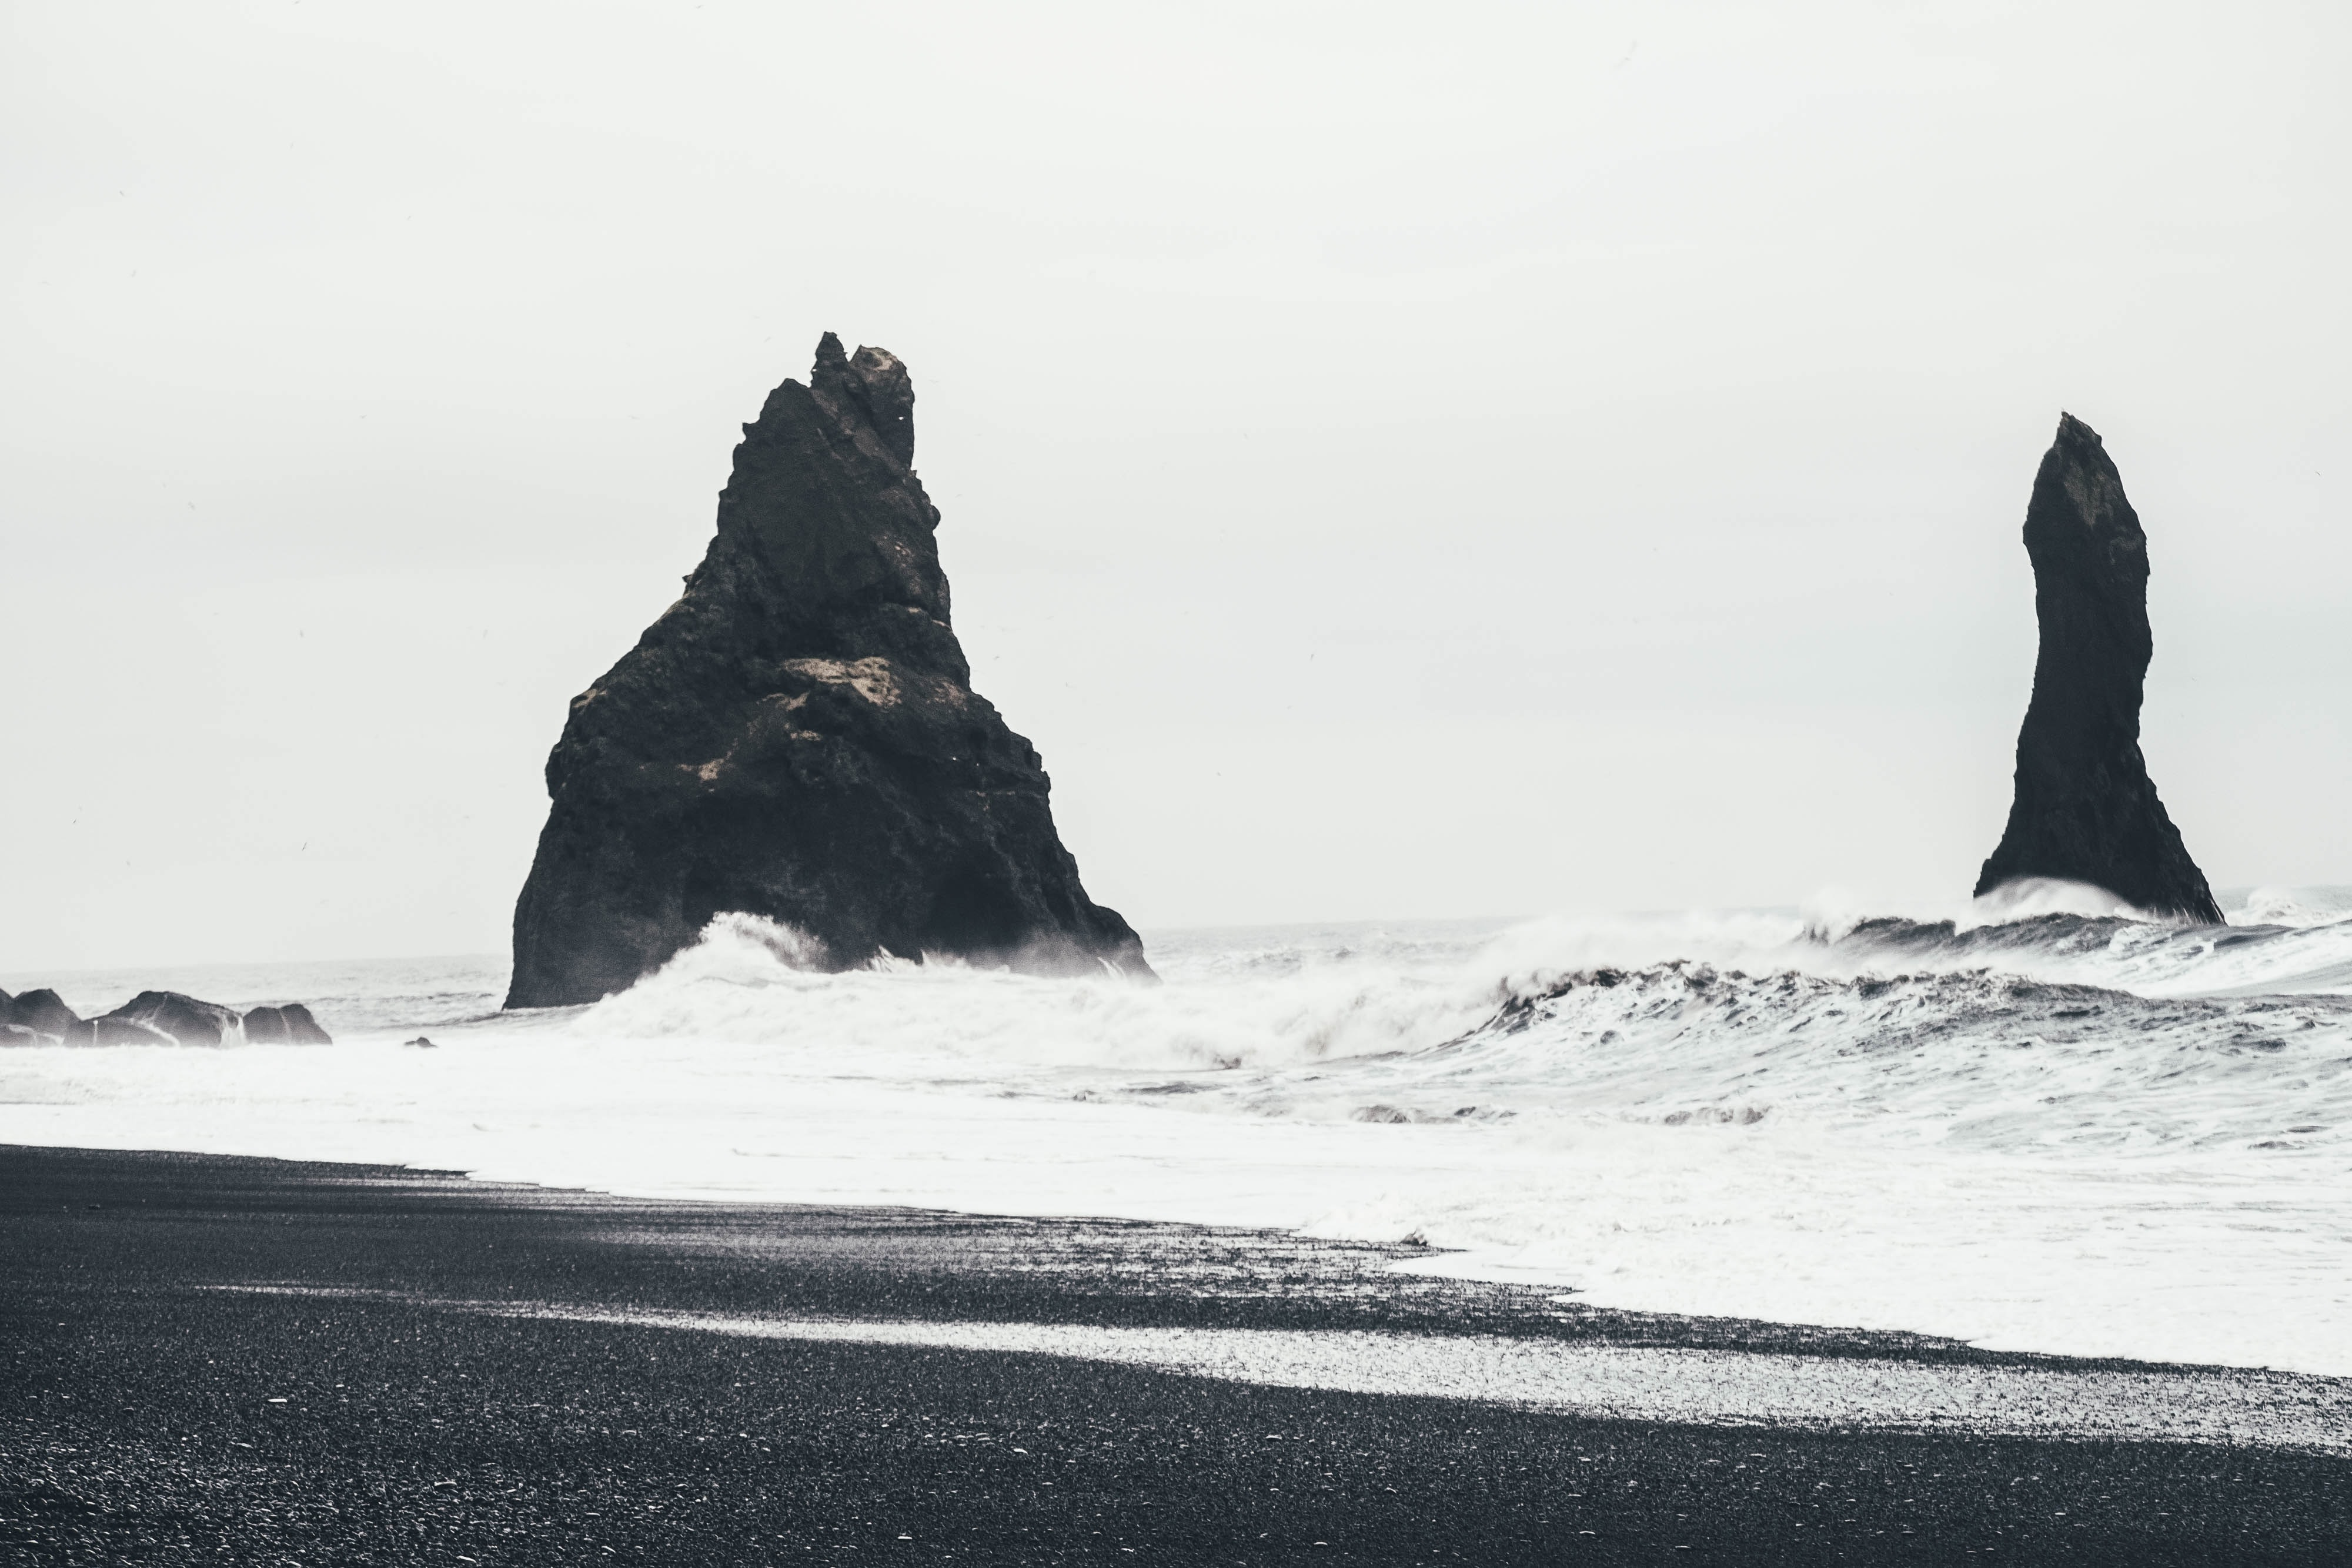 Rough sea splashing on rock formations by the black sand coastline at Reynisdrangar